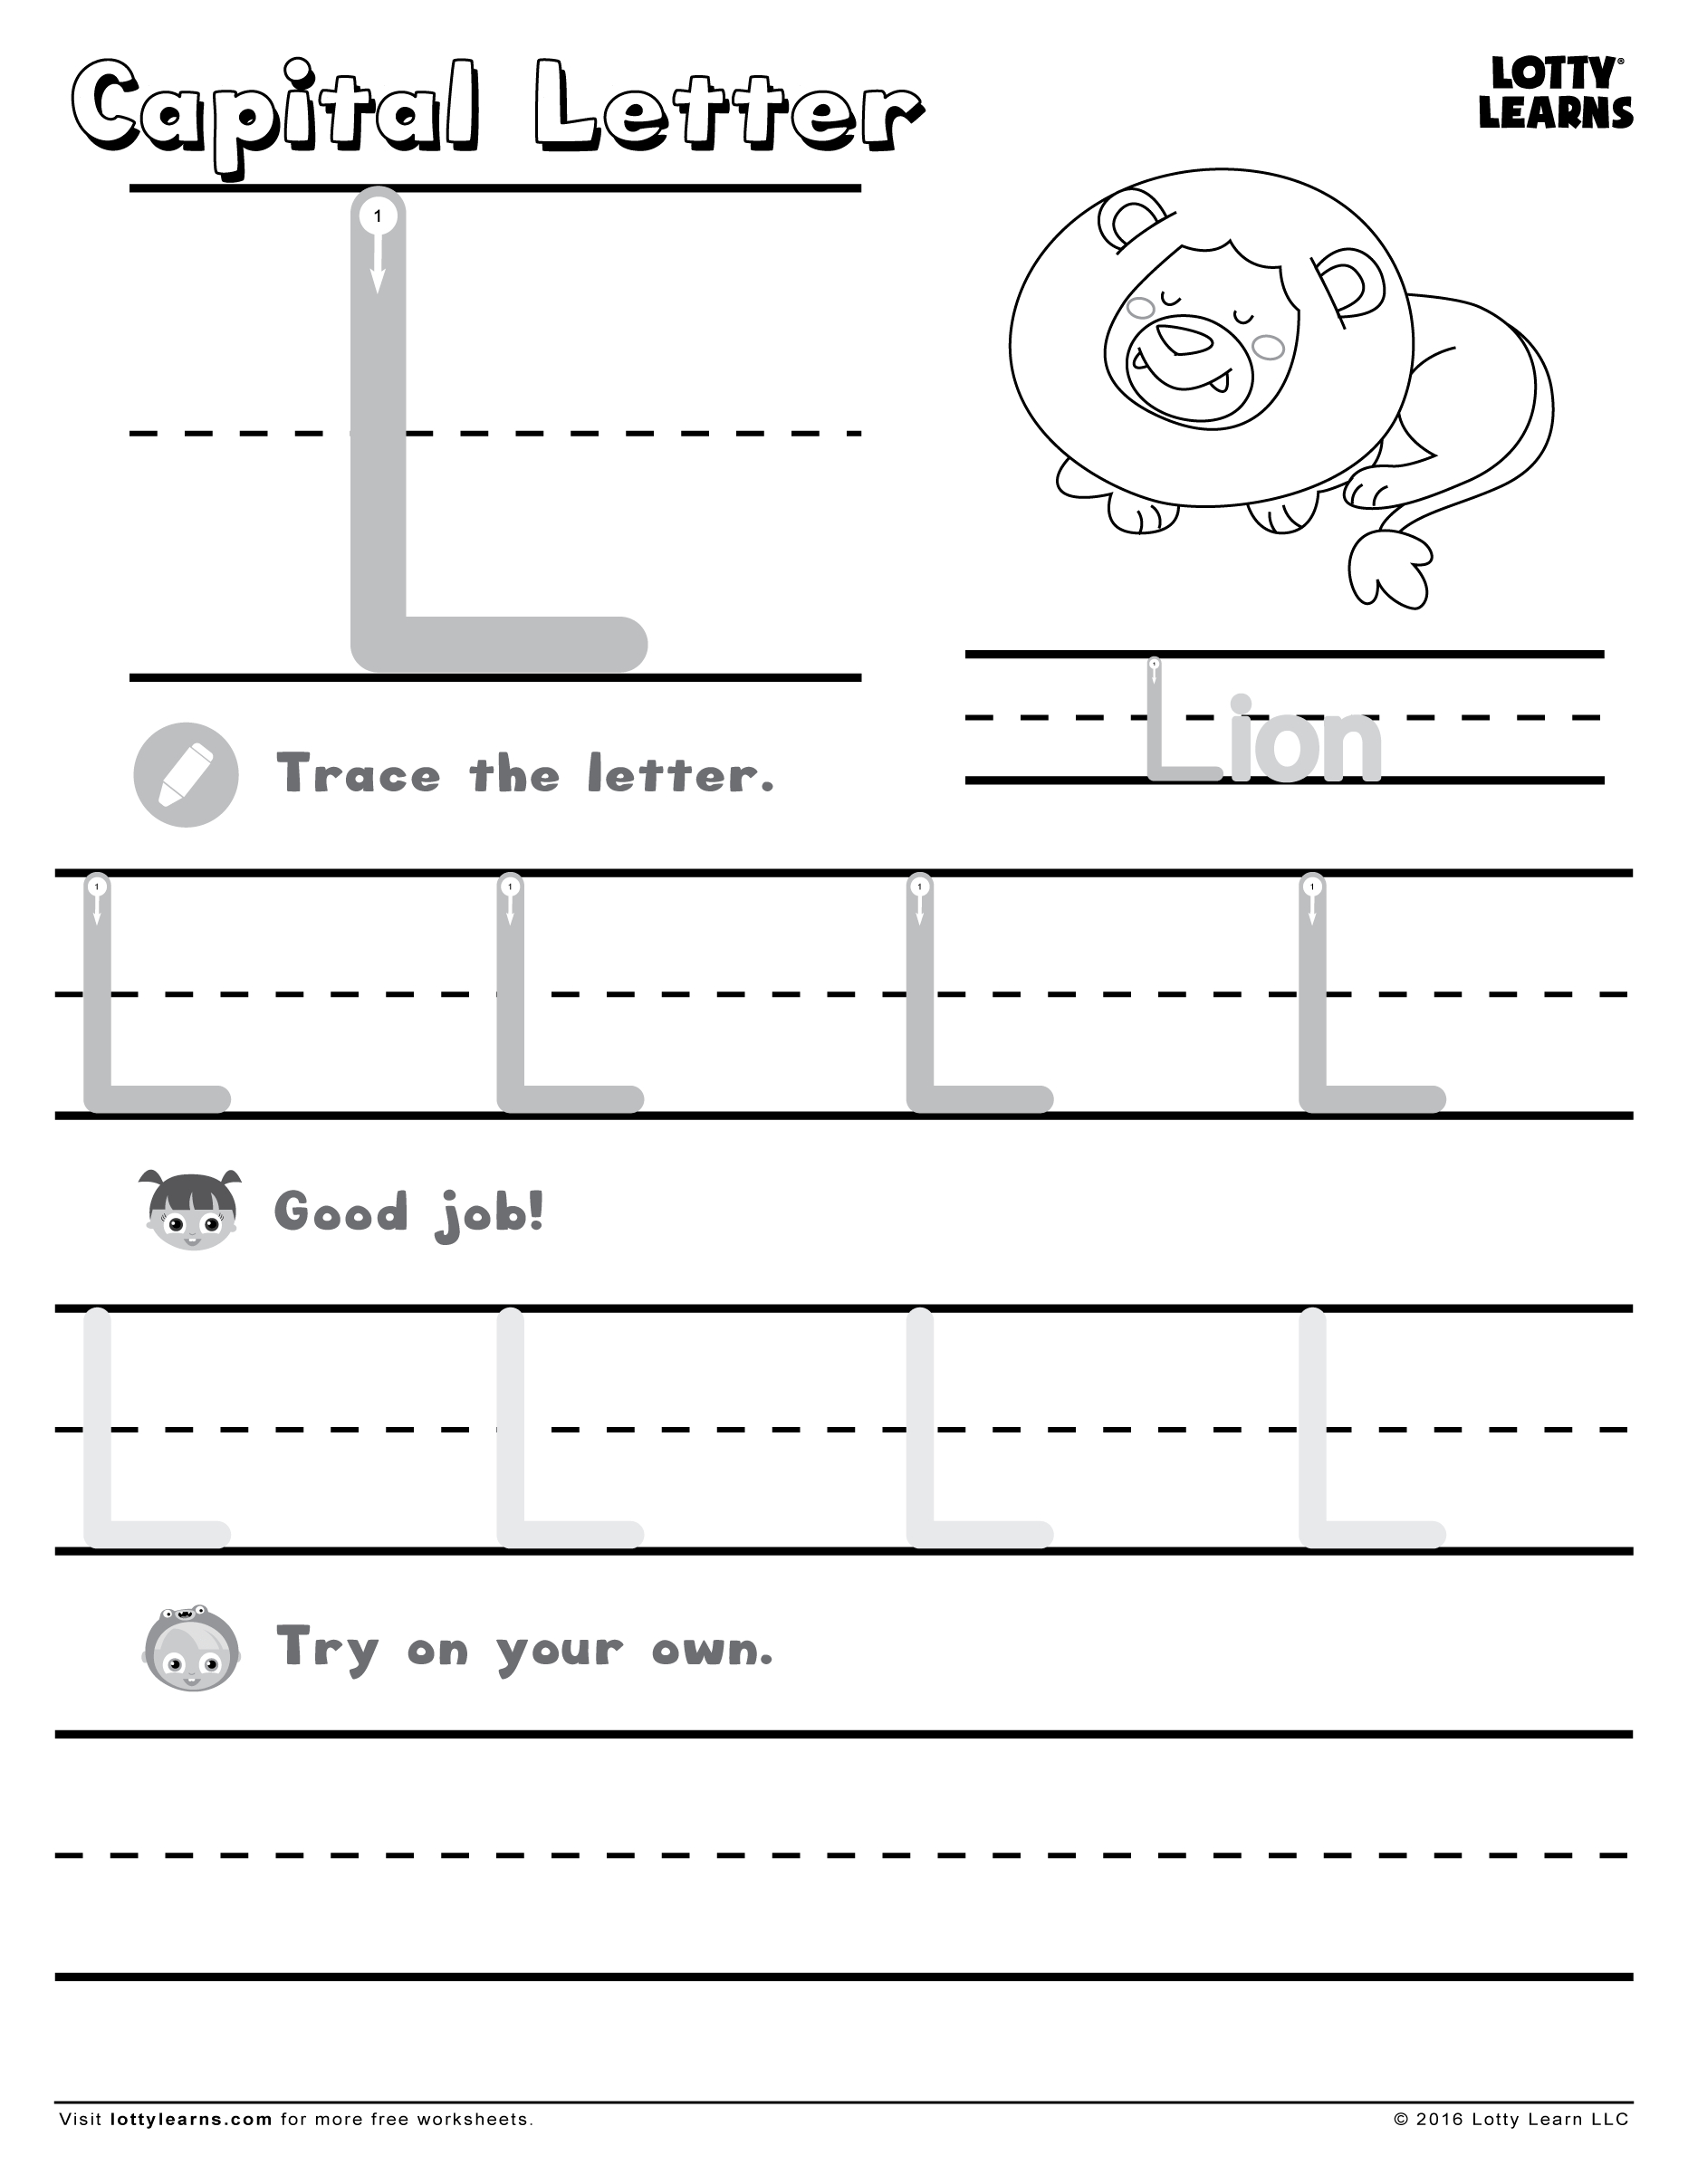 Capital Letter A Worksheets | Printable Worksheets And with Letter L Worksheets For First Grade